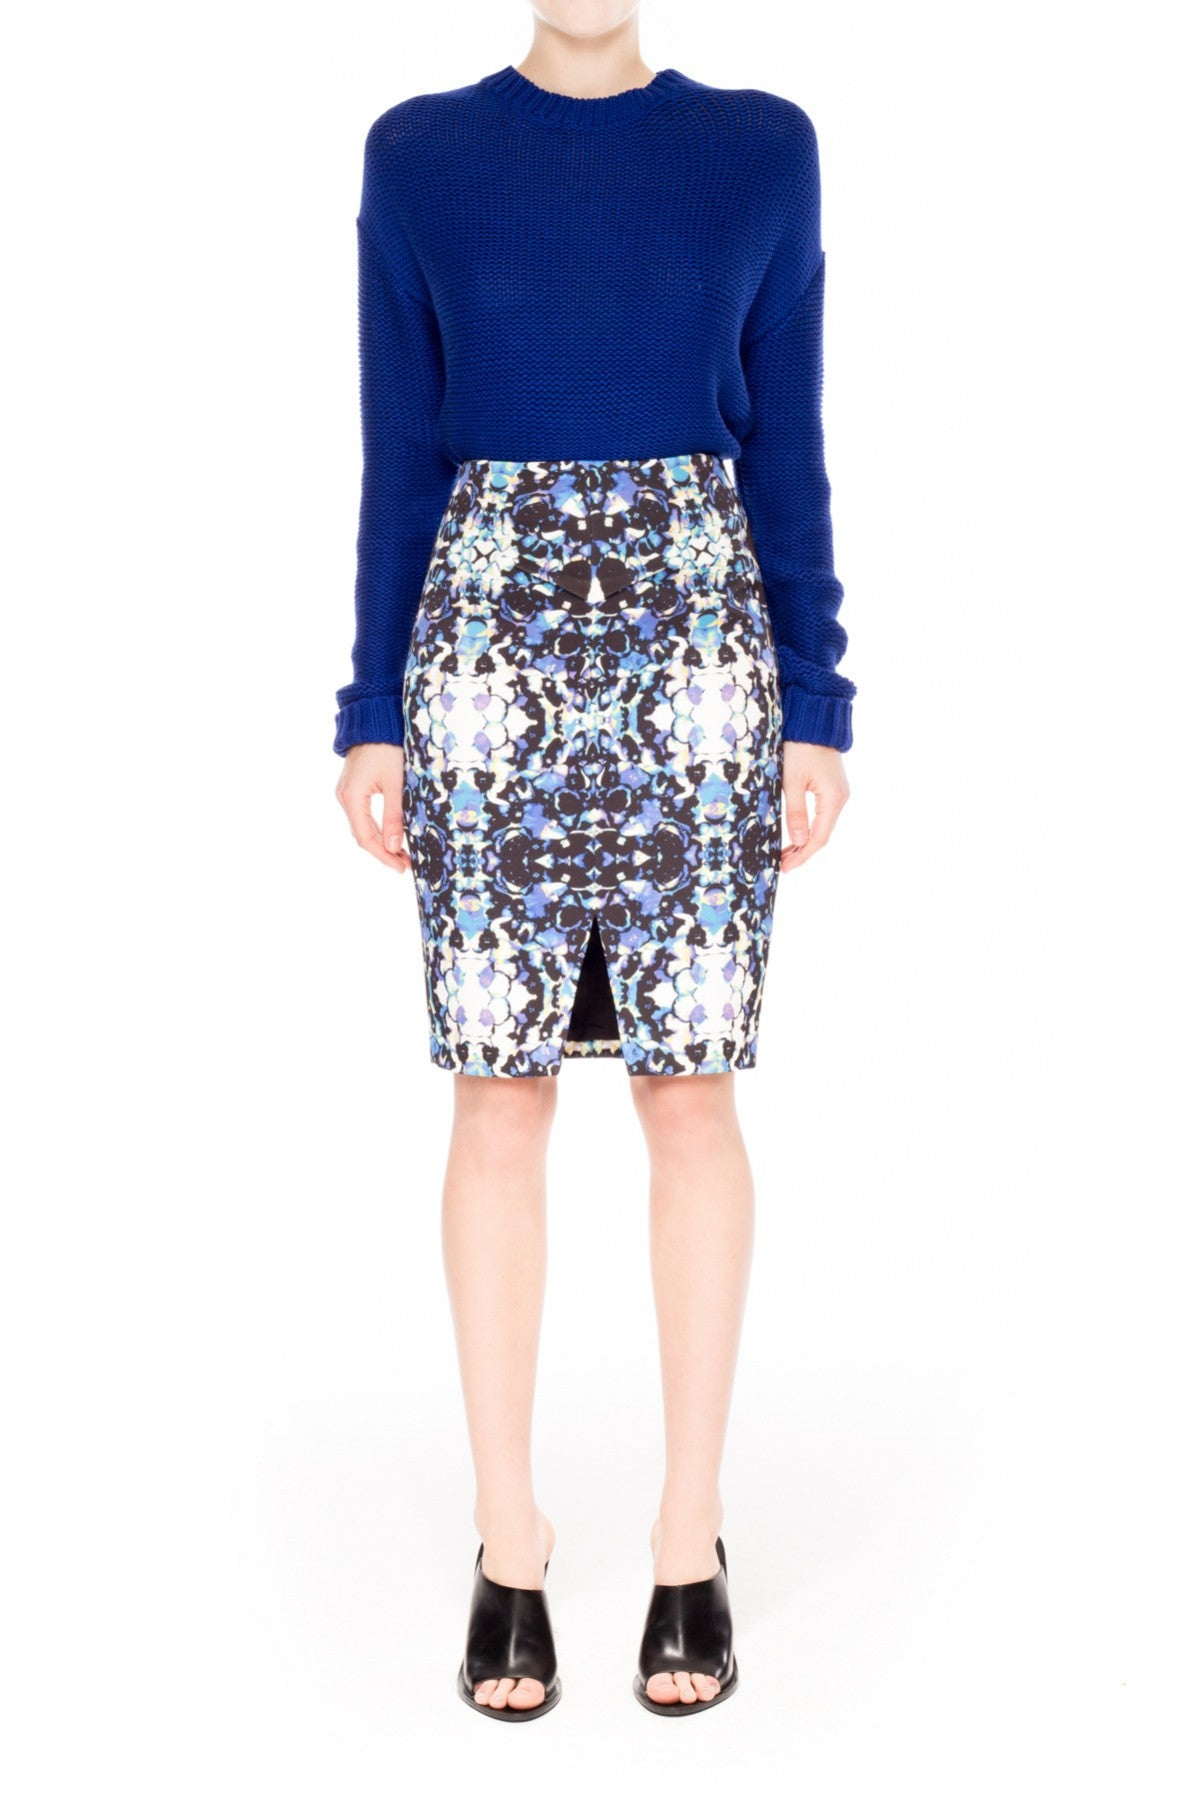 Finders Keepers the Label Instant Crush Skirt